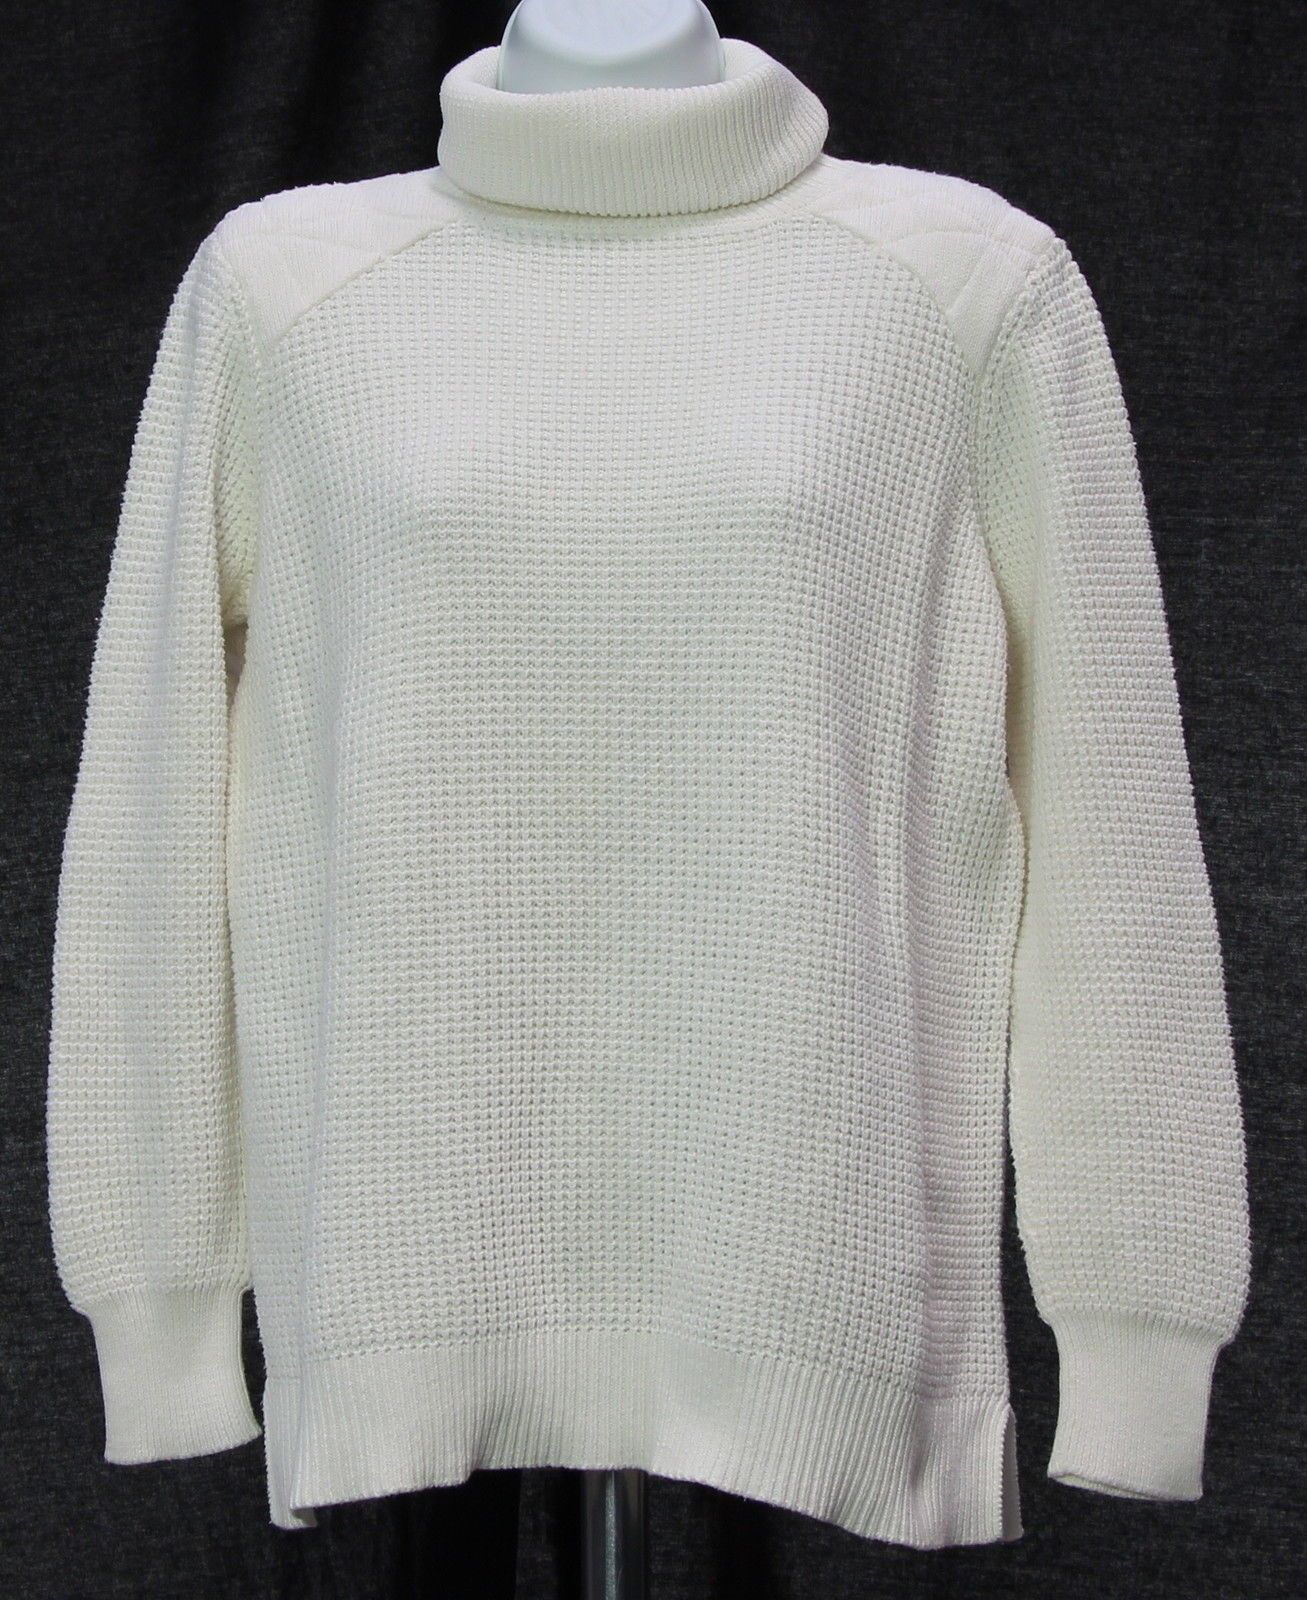 Womens 525 AMERICA White 100% Cotton Knitted Turtleneck Sweater ...